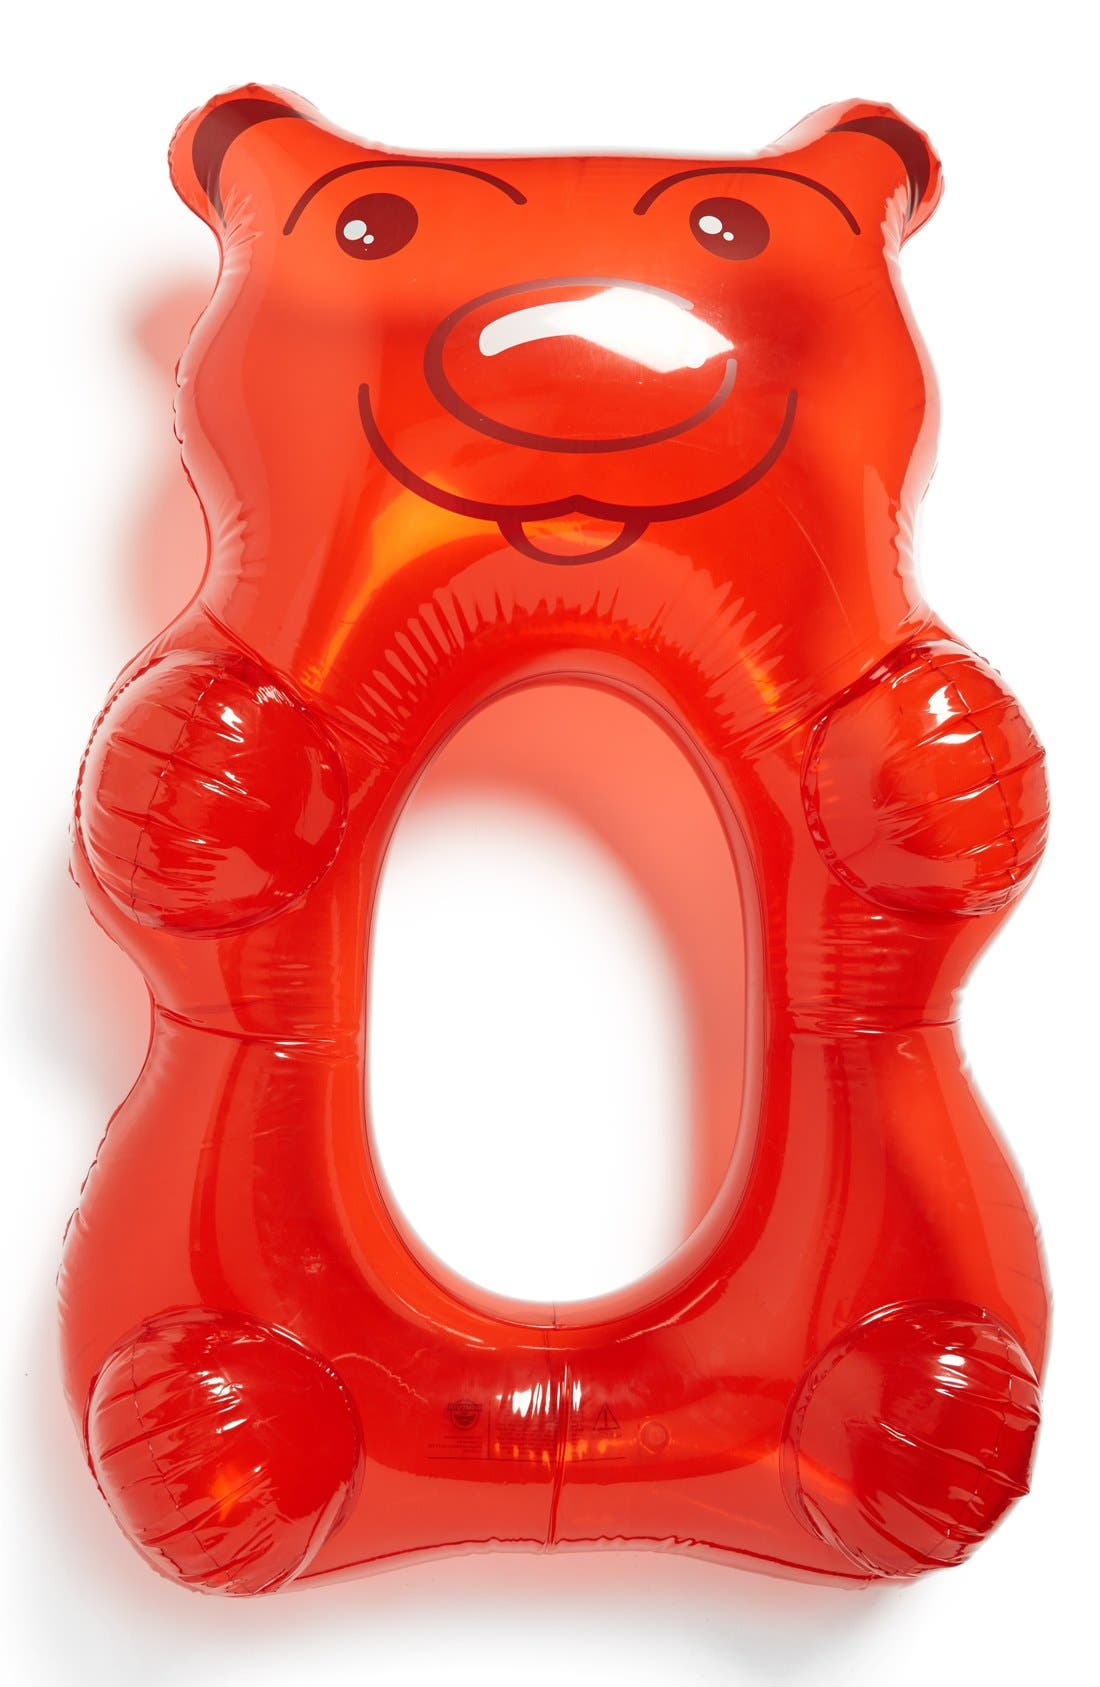 Alternate Image 1 Selected - Big Mouth Toys 'Gummy Bear' Pool Float